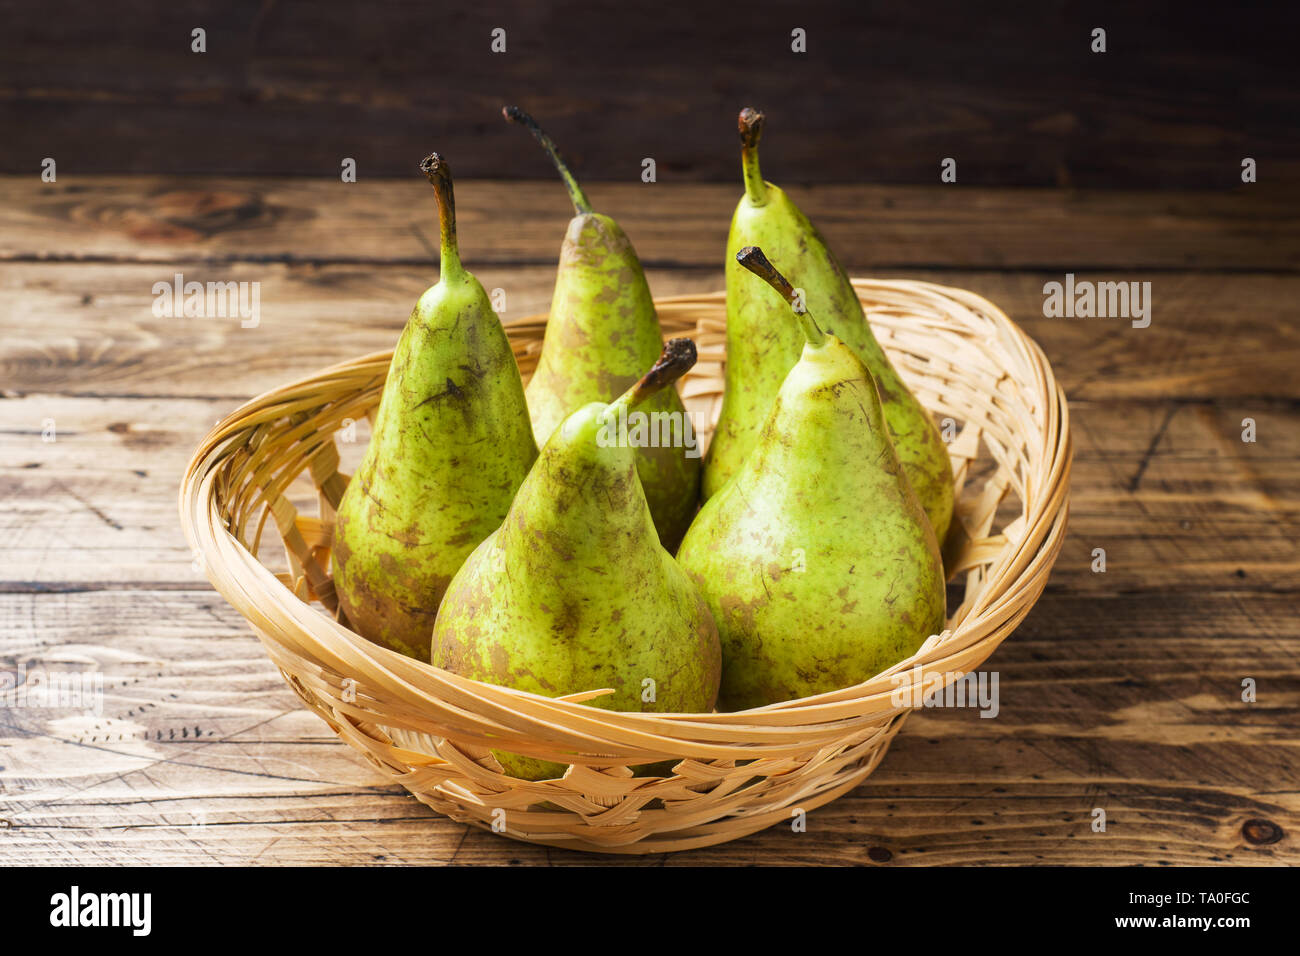 Fresh juicy Pears Conference in a basket on a wooden rustic background - Stock Image